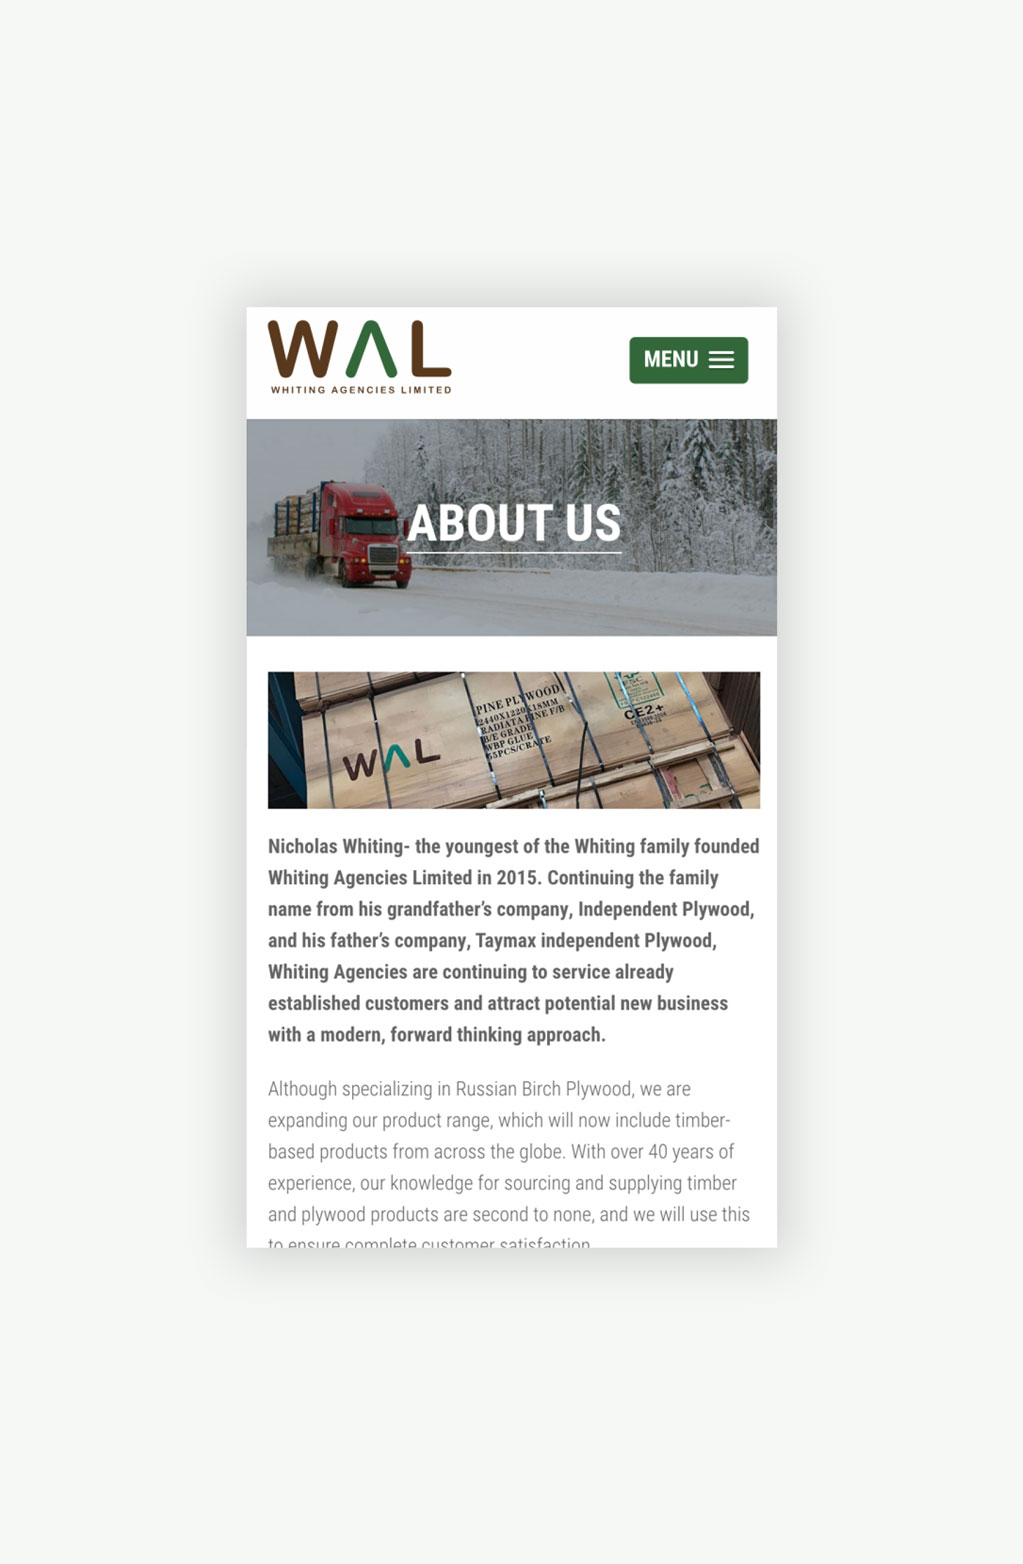 Whiting Agencies Limited About Us Page